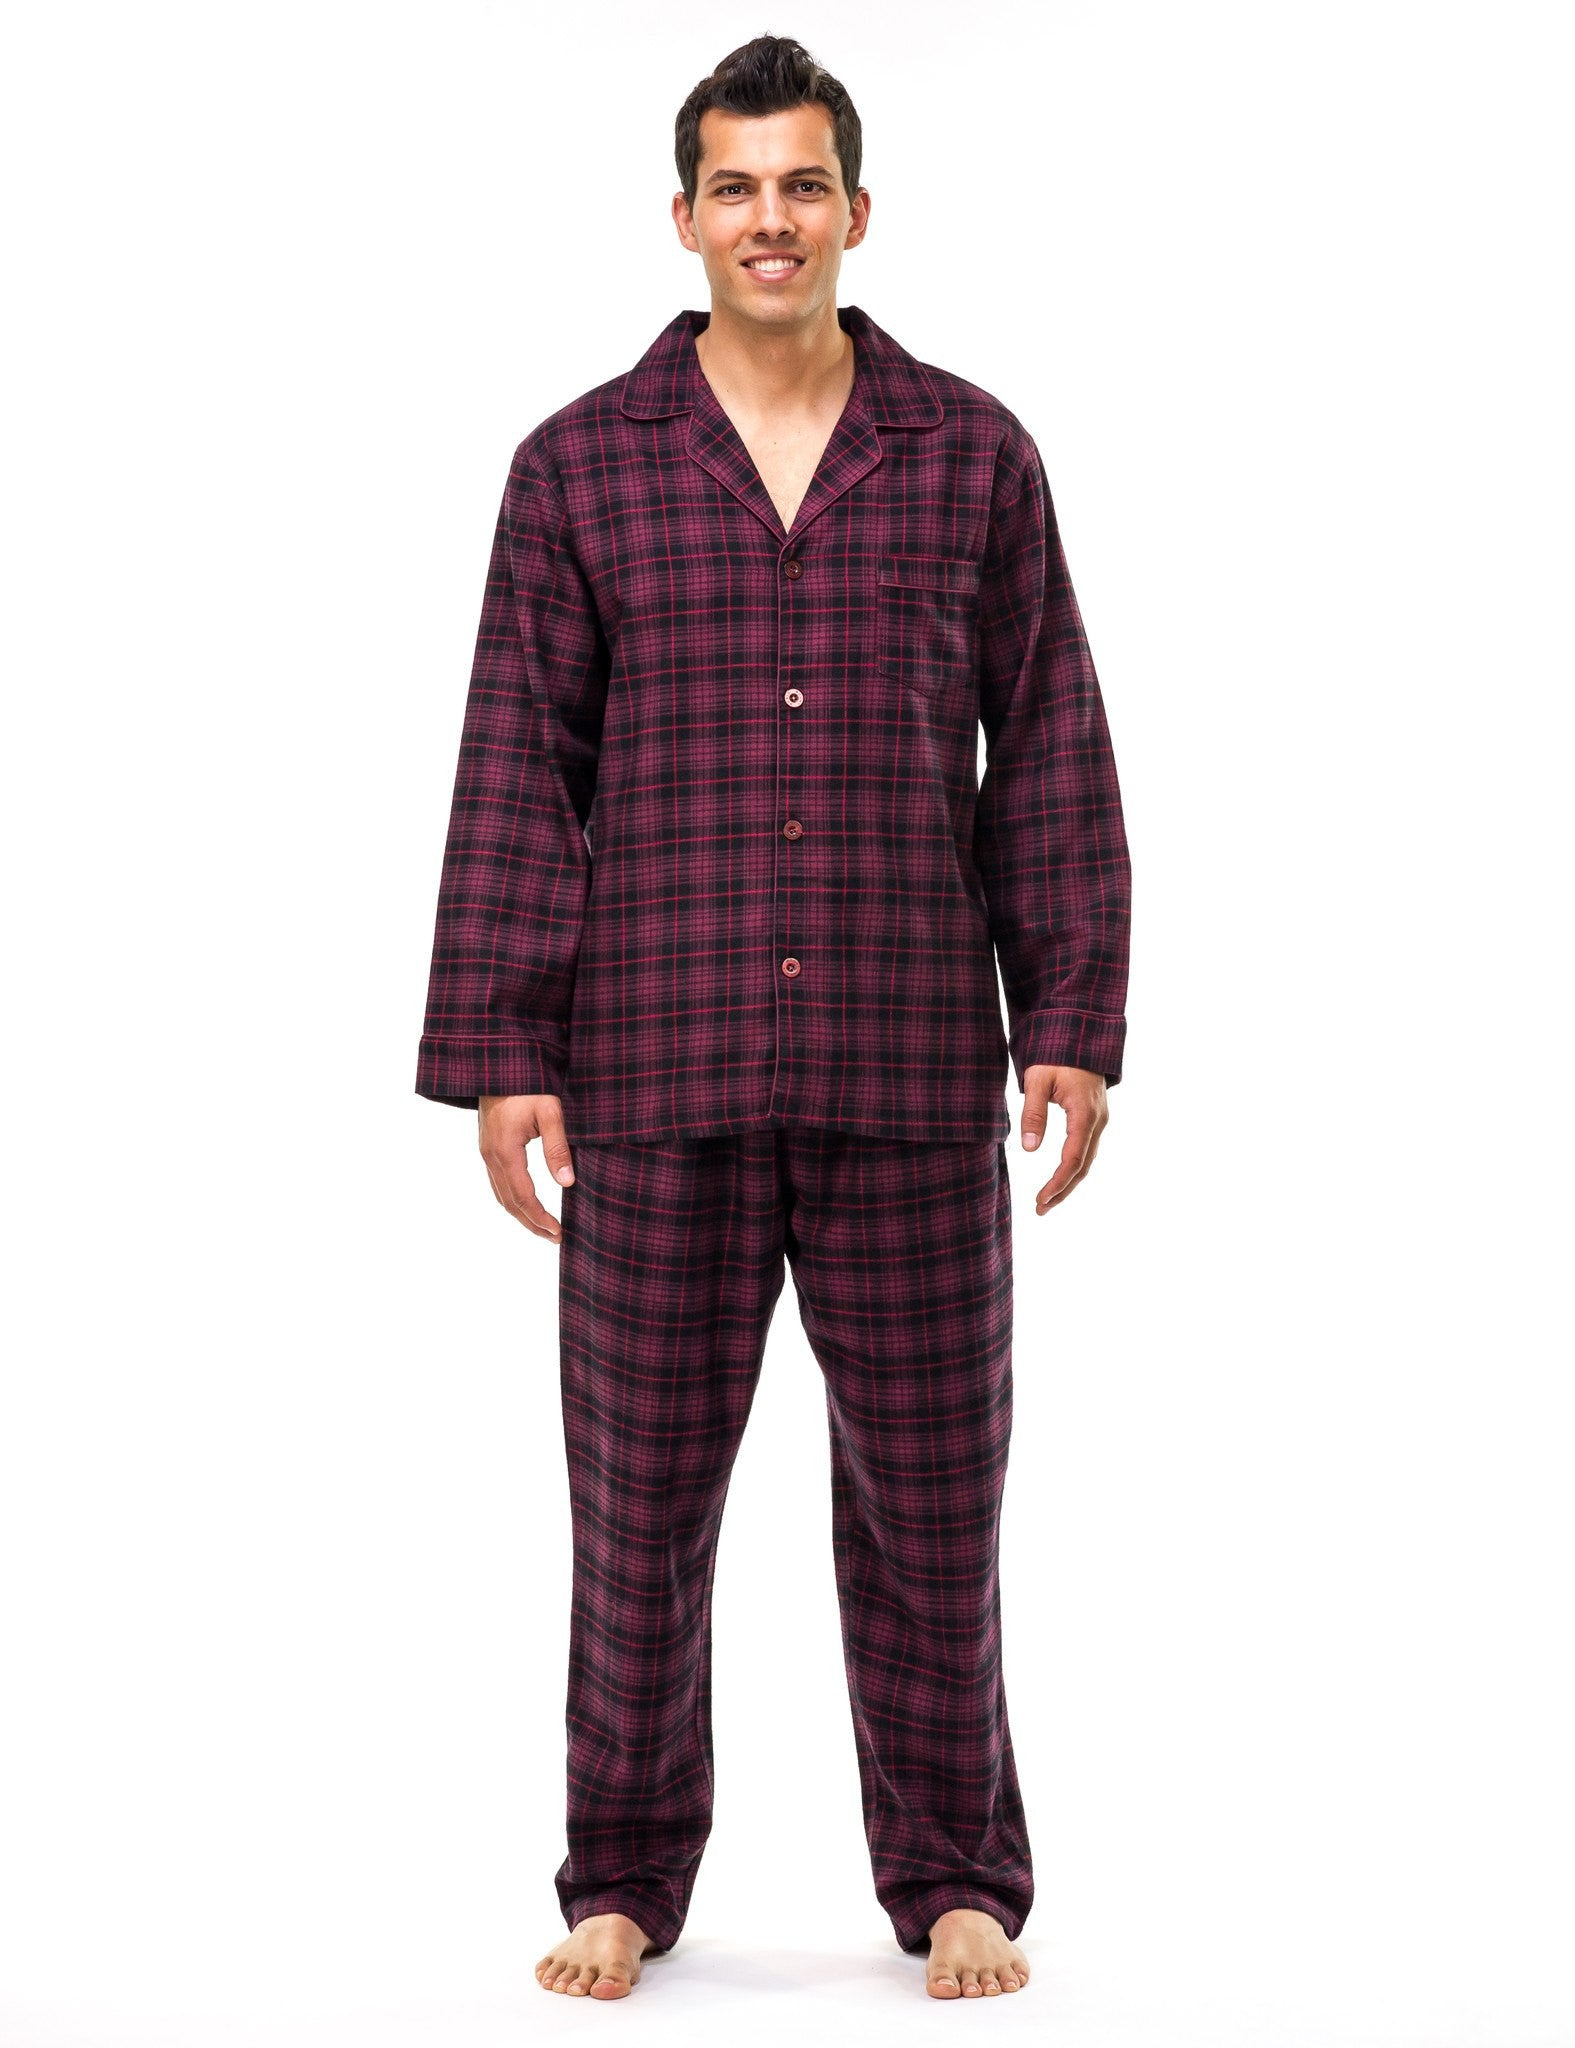 Men's Premium 100% Cotton Flannel Pajama Sleepwear Set (Relaxed Fit)